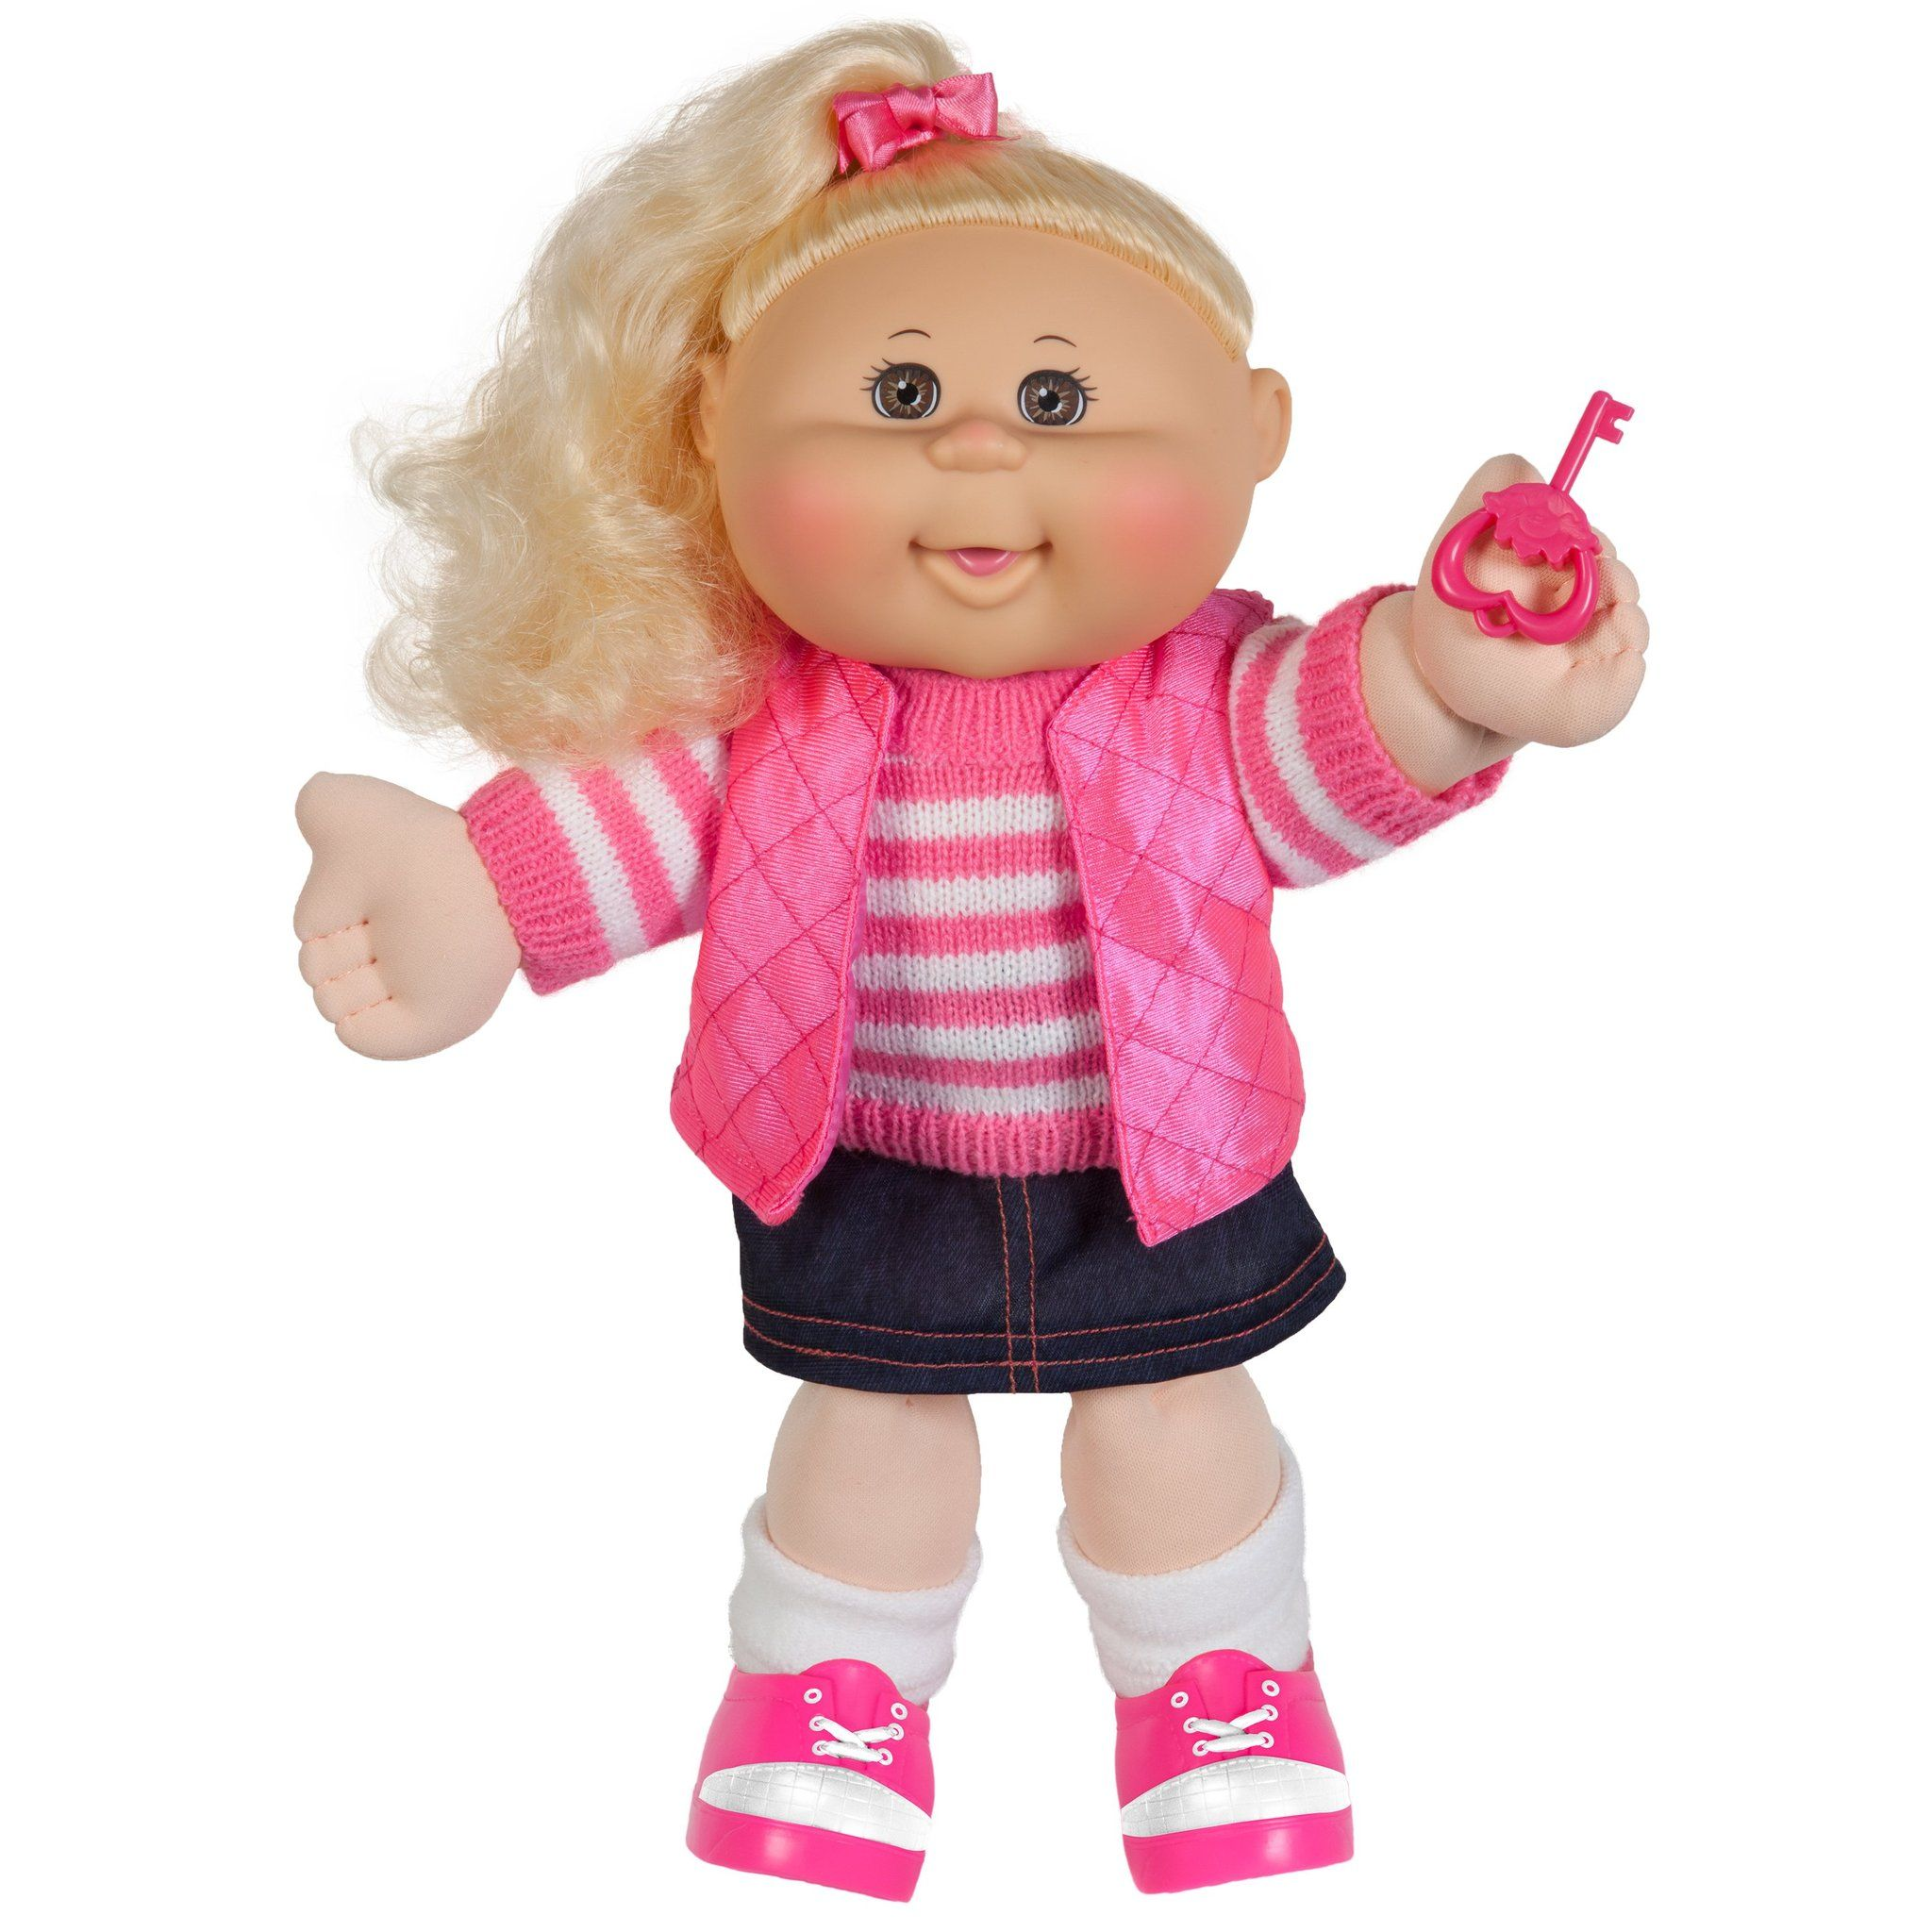 14 Kids Cabbage Patch Kids Store Cabbage Patch Kids Patch Kids Cabbage Patch